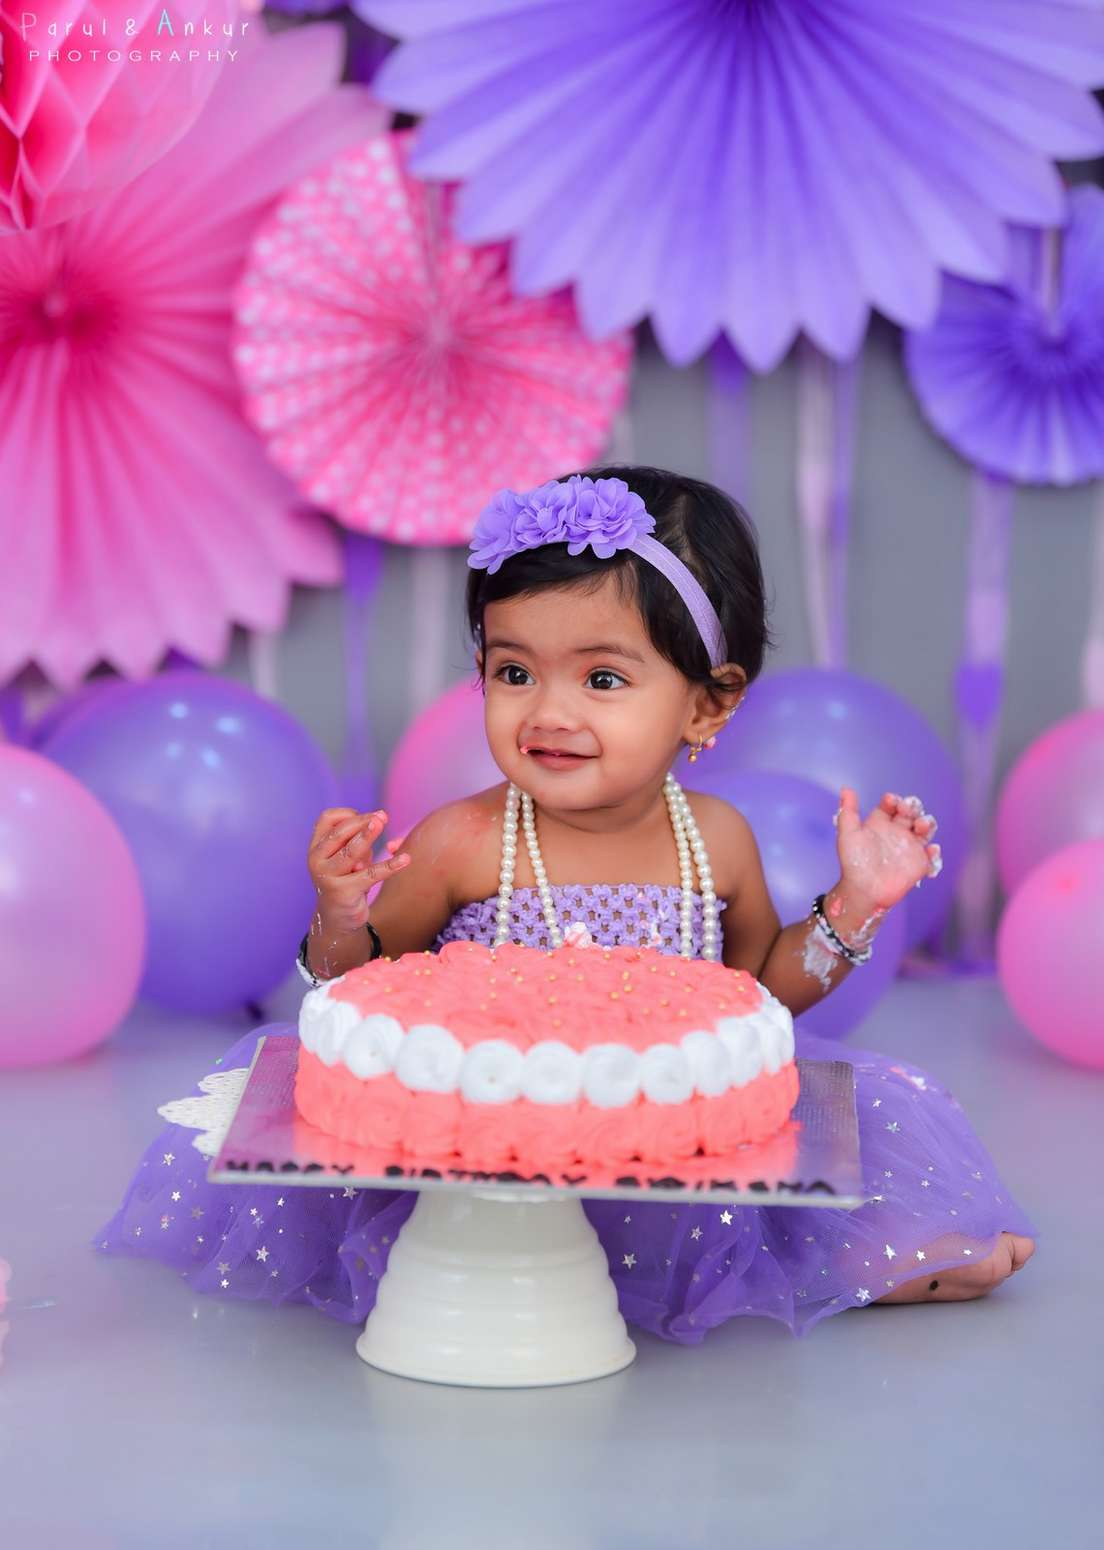 Sidiksha's cake smash photo